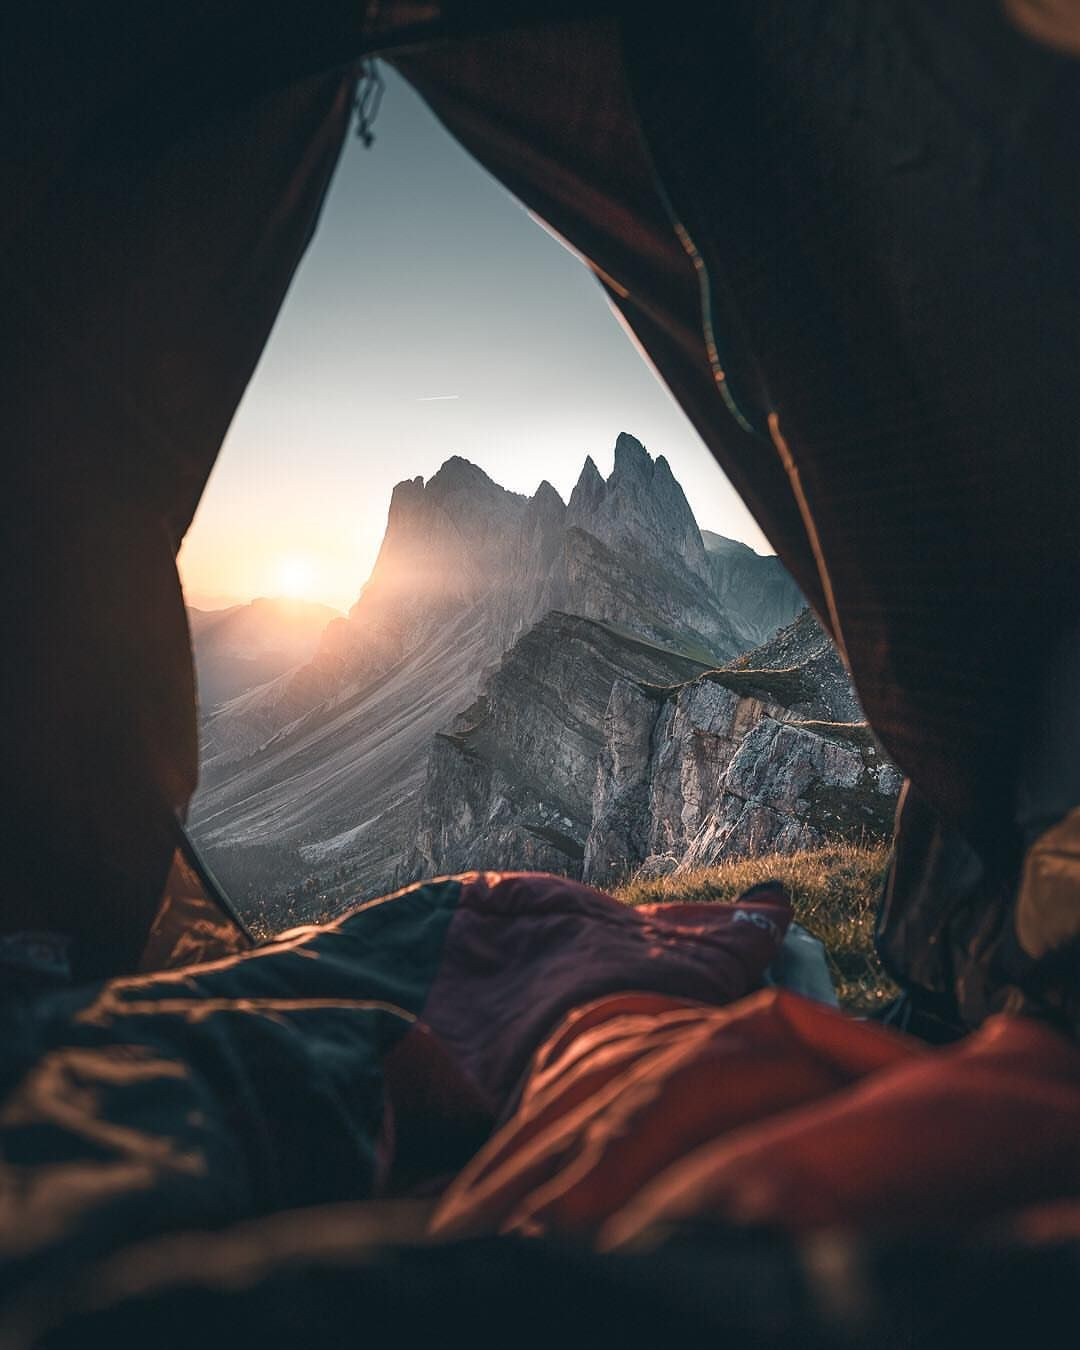 #modernoutdoors: Outstanding Landscape Photography by Frederik Opdeweegh #campingpictures